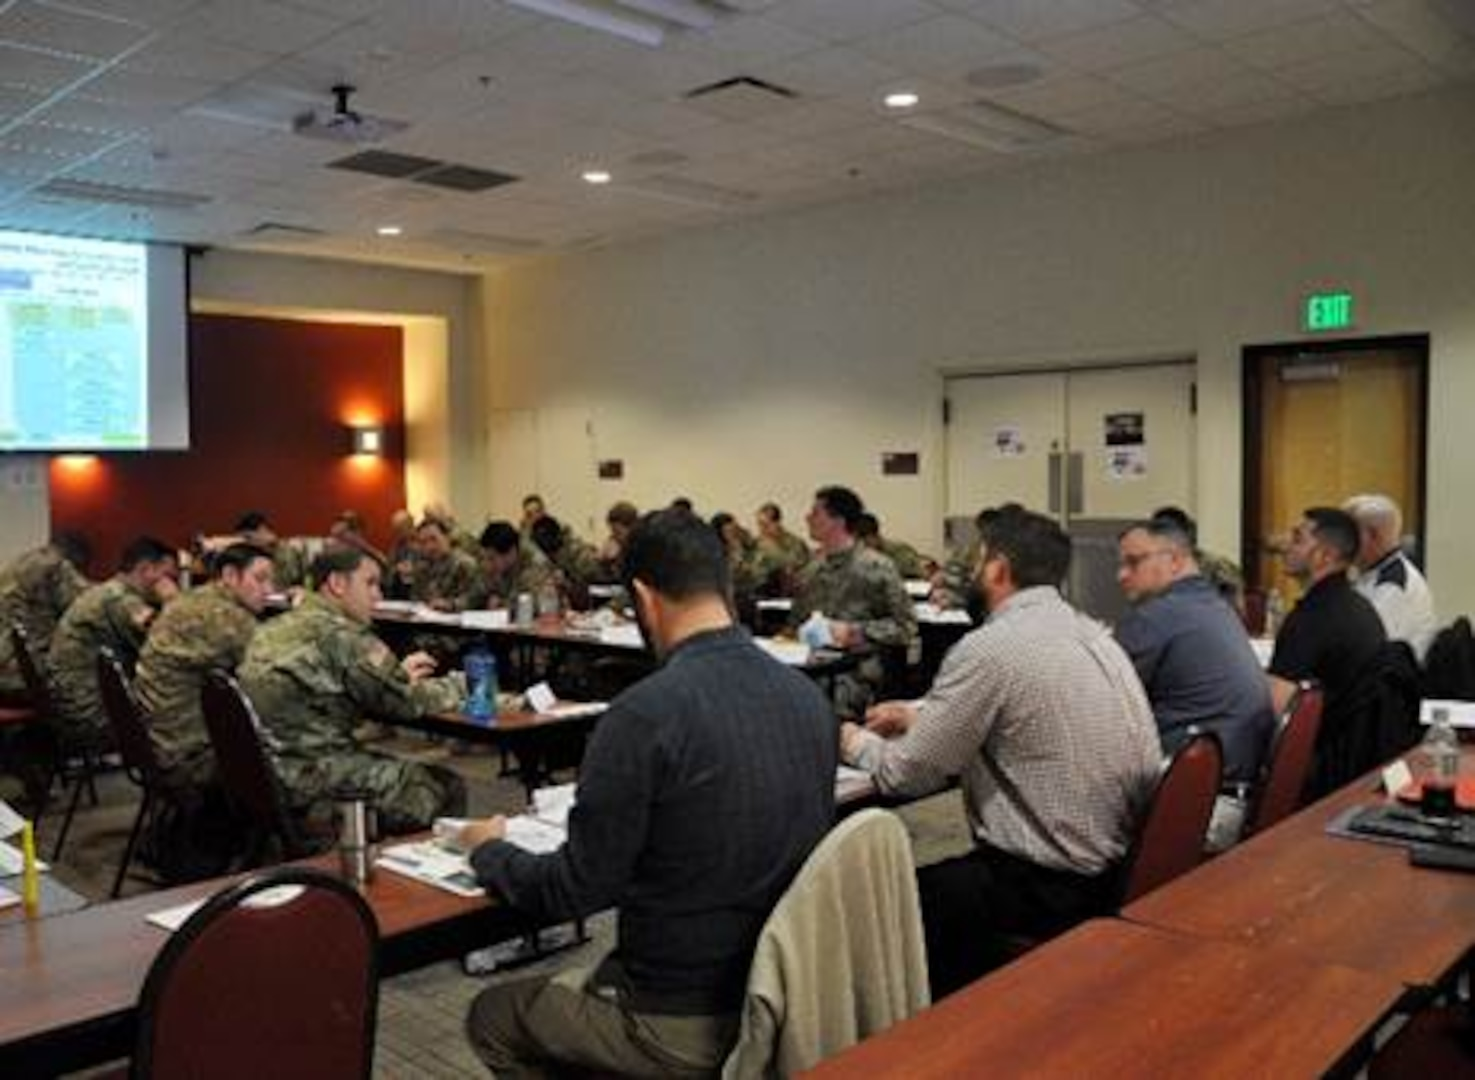 USCENTCOM staff provide training to civil affairs personnel deploying to the USCENTCOM Area of Responsibility. Participants received detailed instruction on policy and processes, as well as performing a hands-on exercise simulating a real-world scenario. (Courtesy photo)